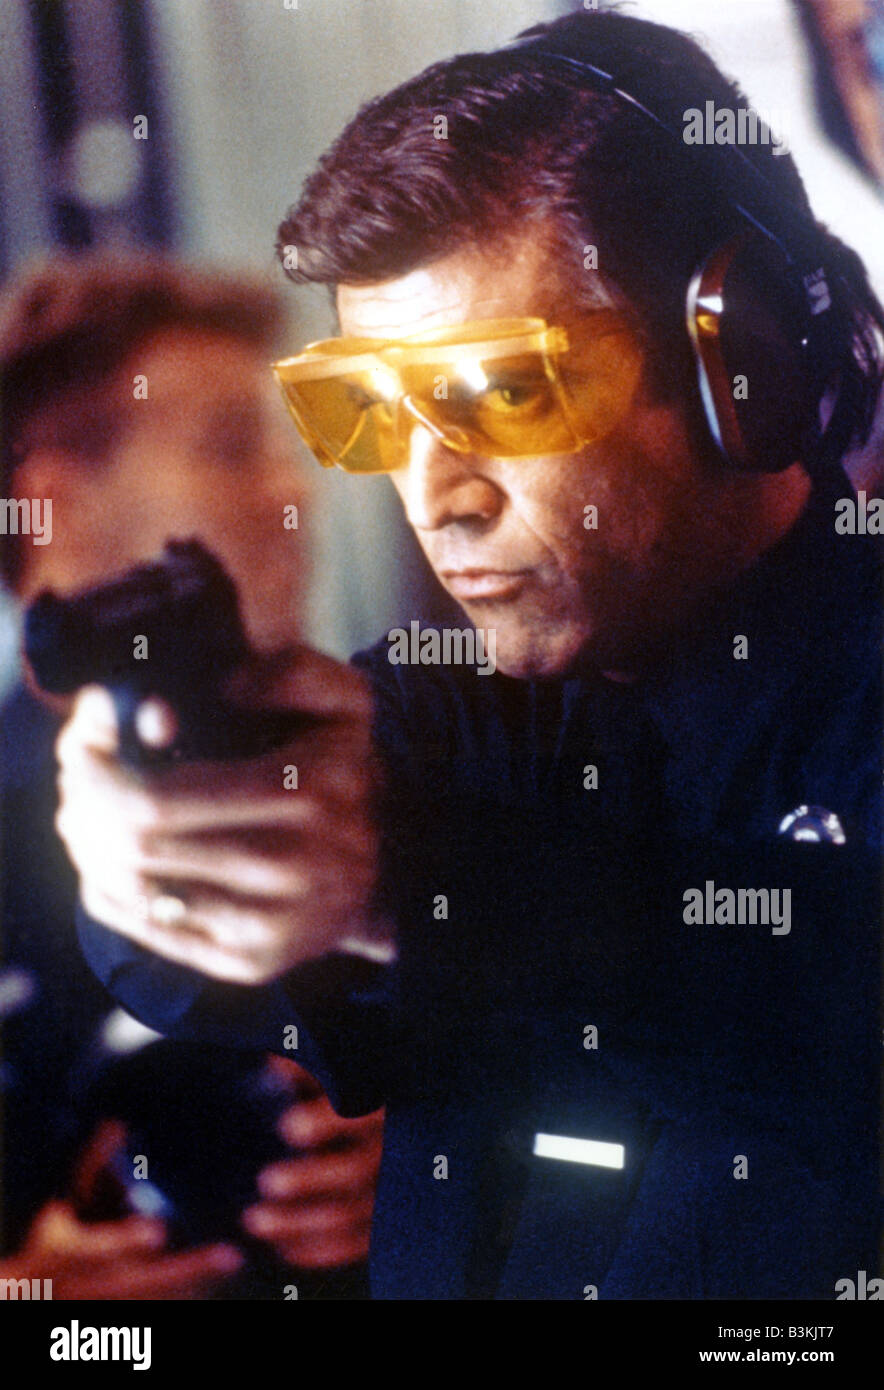 LEATHAL WEAPON 3 1992 Warner film with Joe Pesci - Stock Image